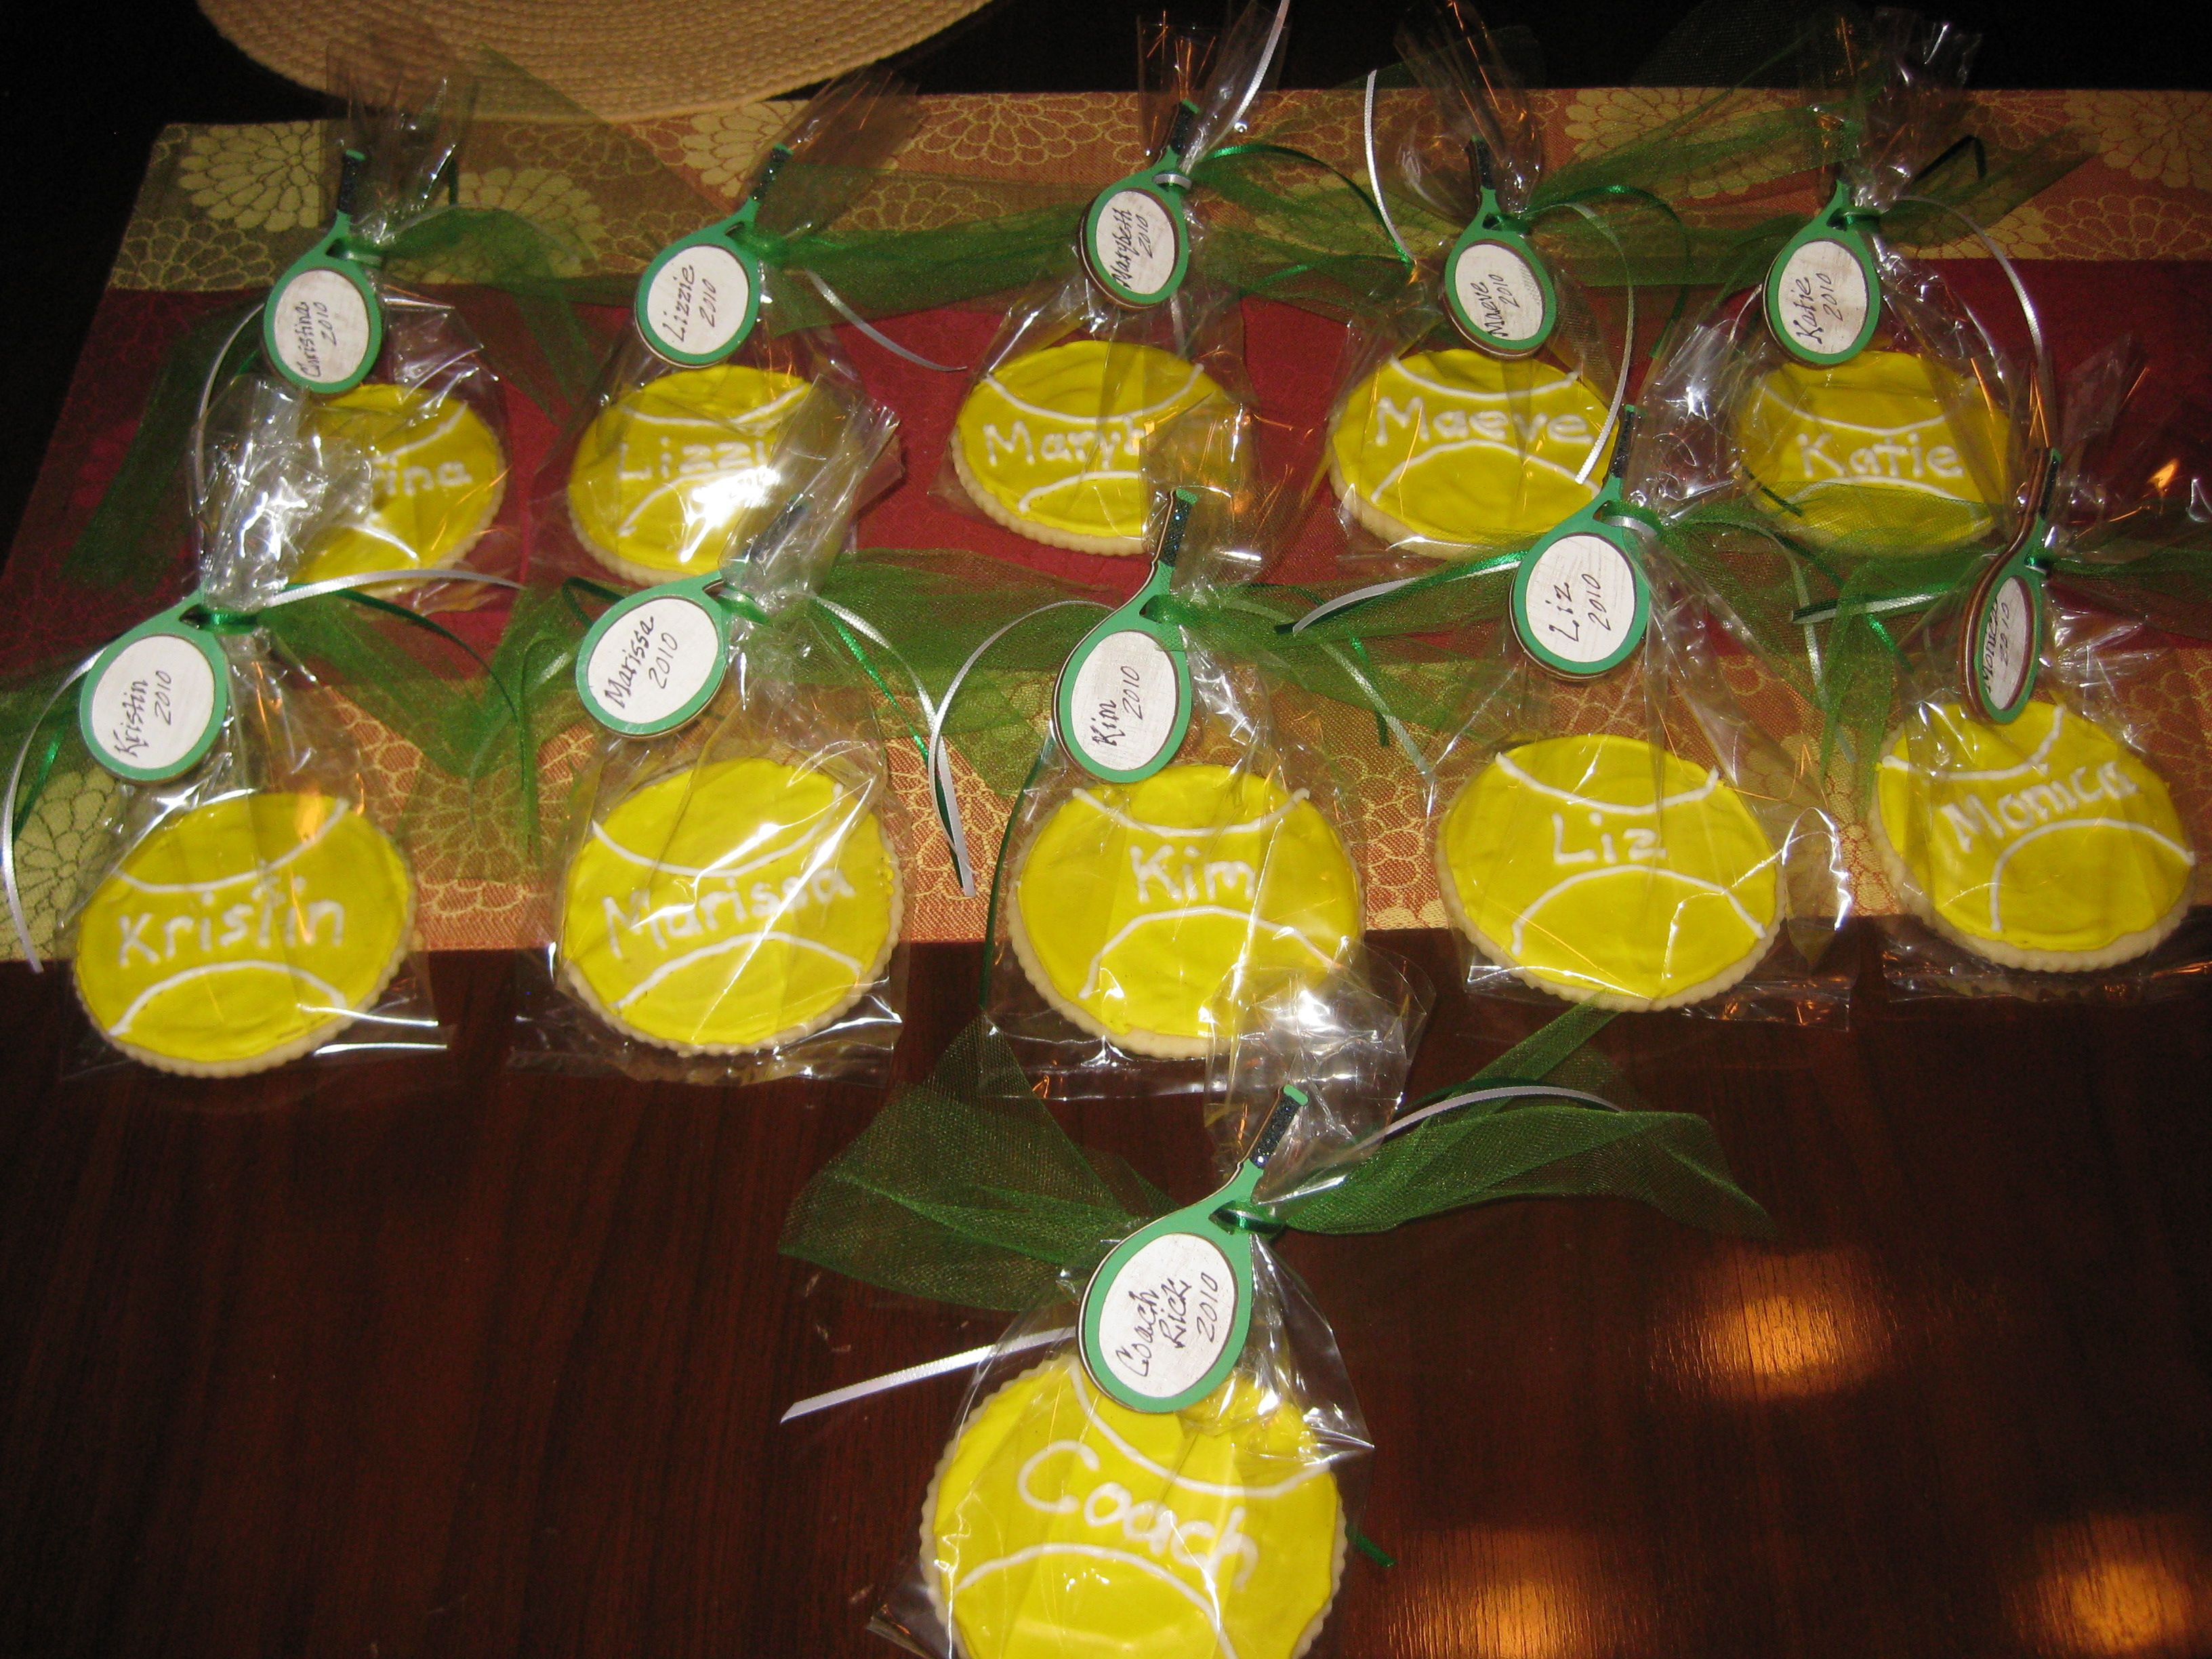 Tennis ball sugar cookies.  Super cute and not too difficult to make.